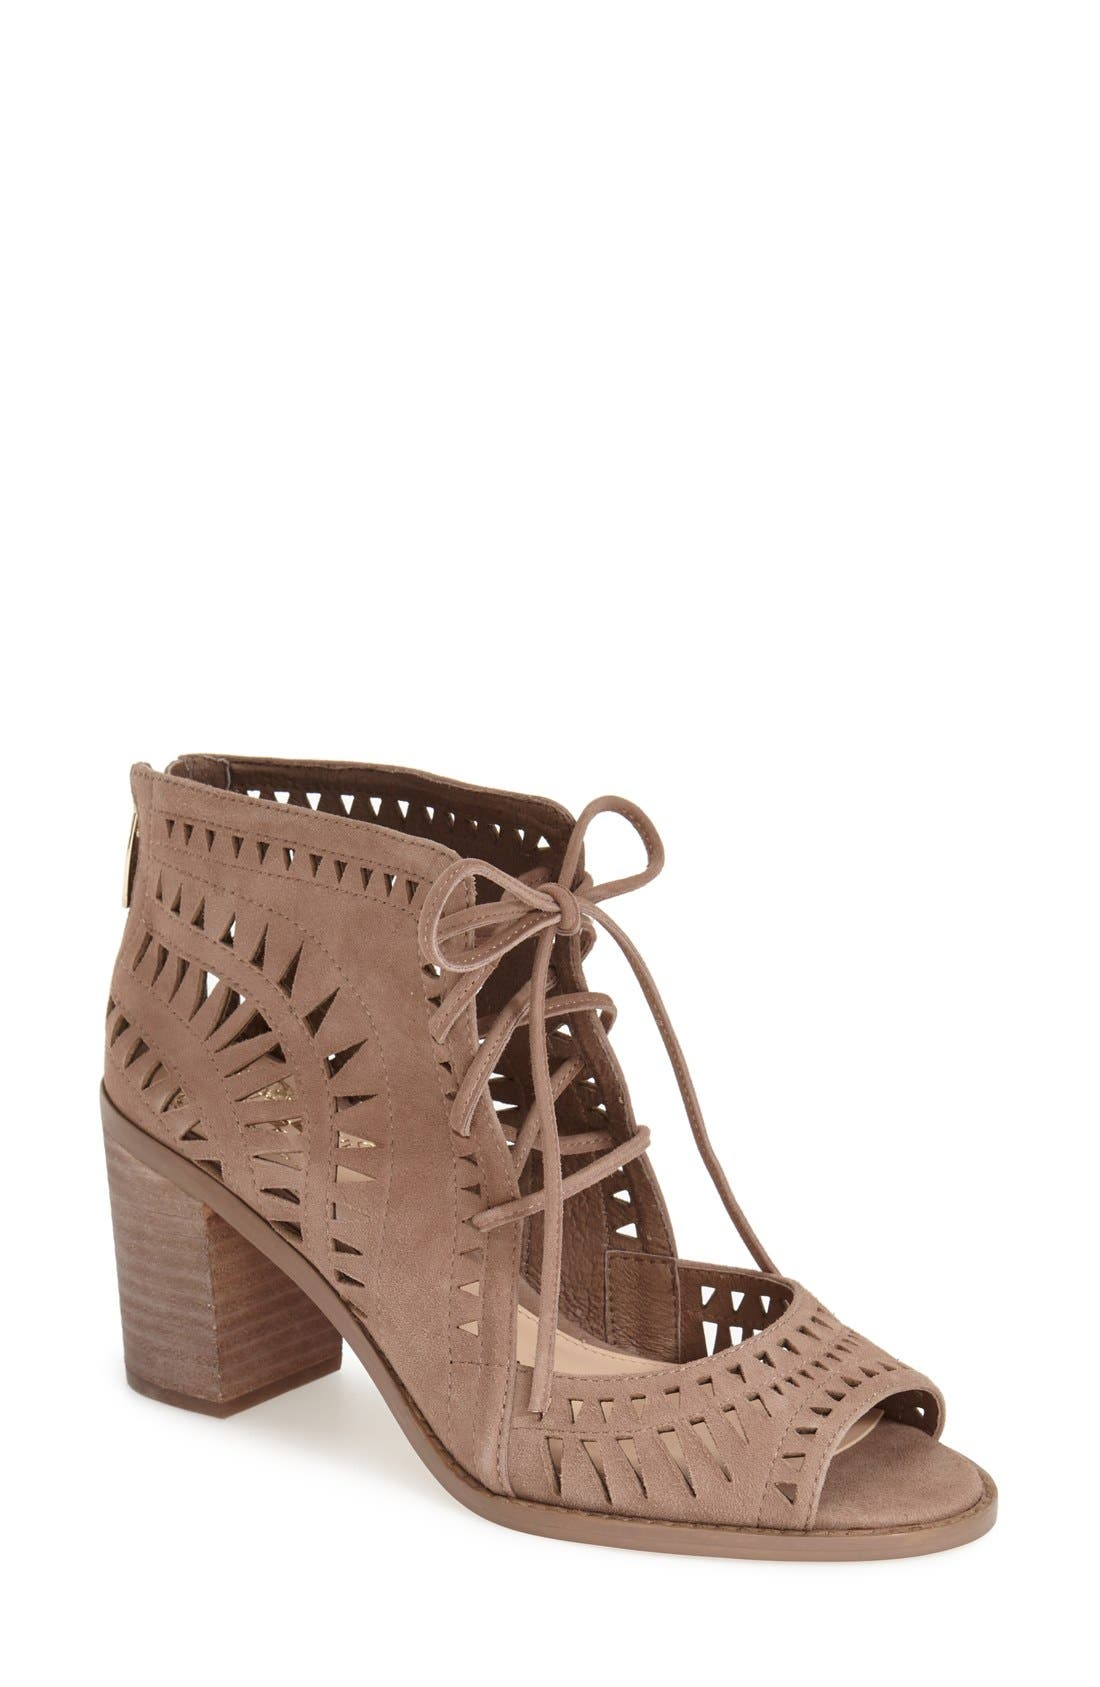 Alternate Image 1 Selected - Vince Camuto 'Tarita' Cutout Lace-Up Sandal (Women) (Nordstrom Exclusive)